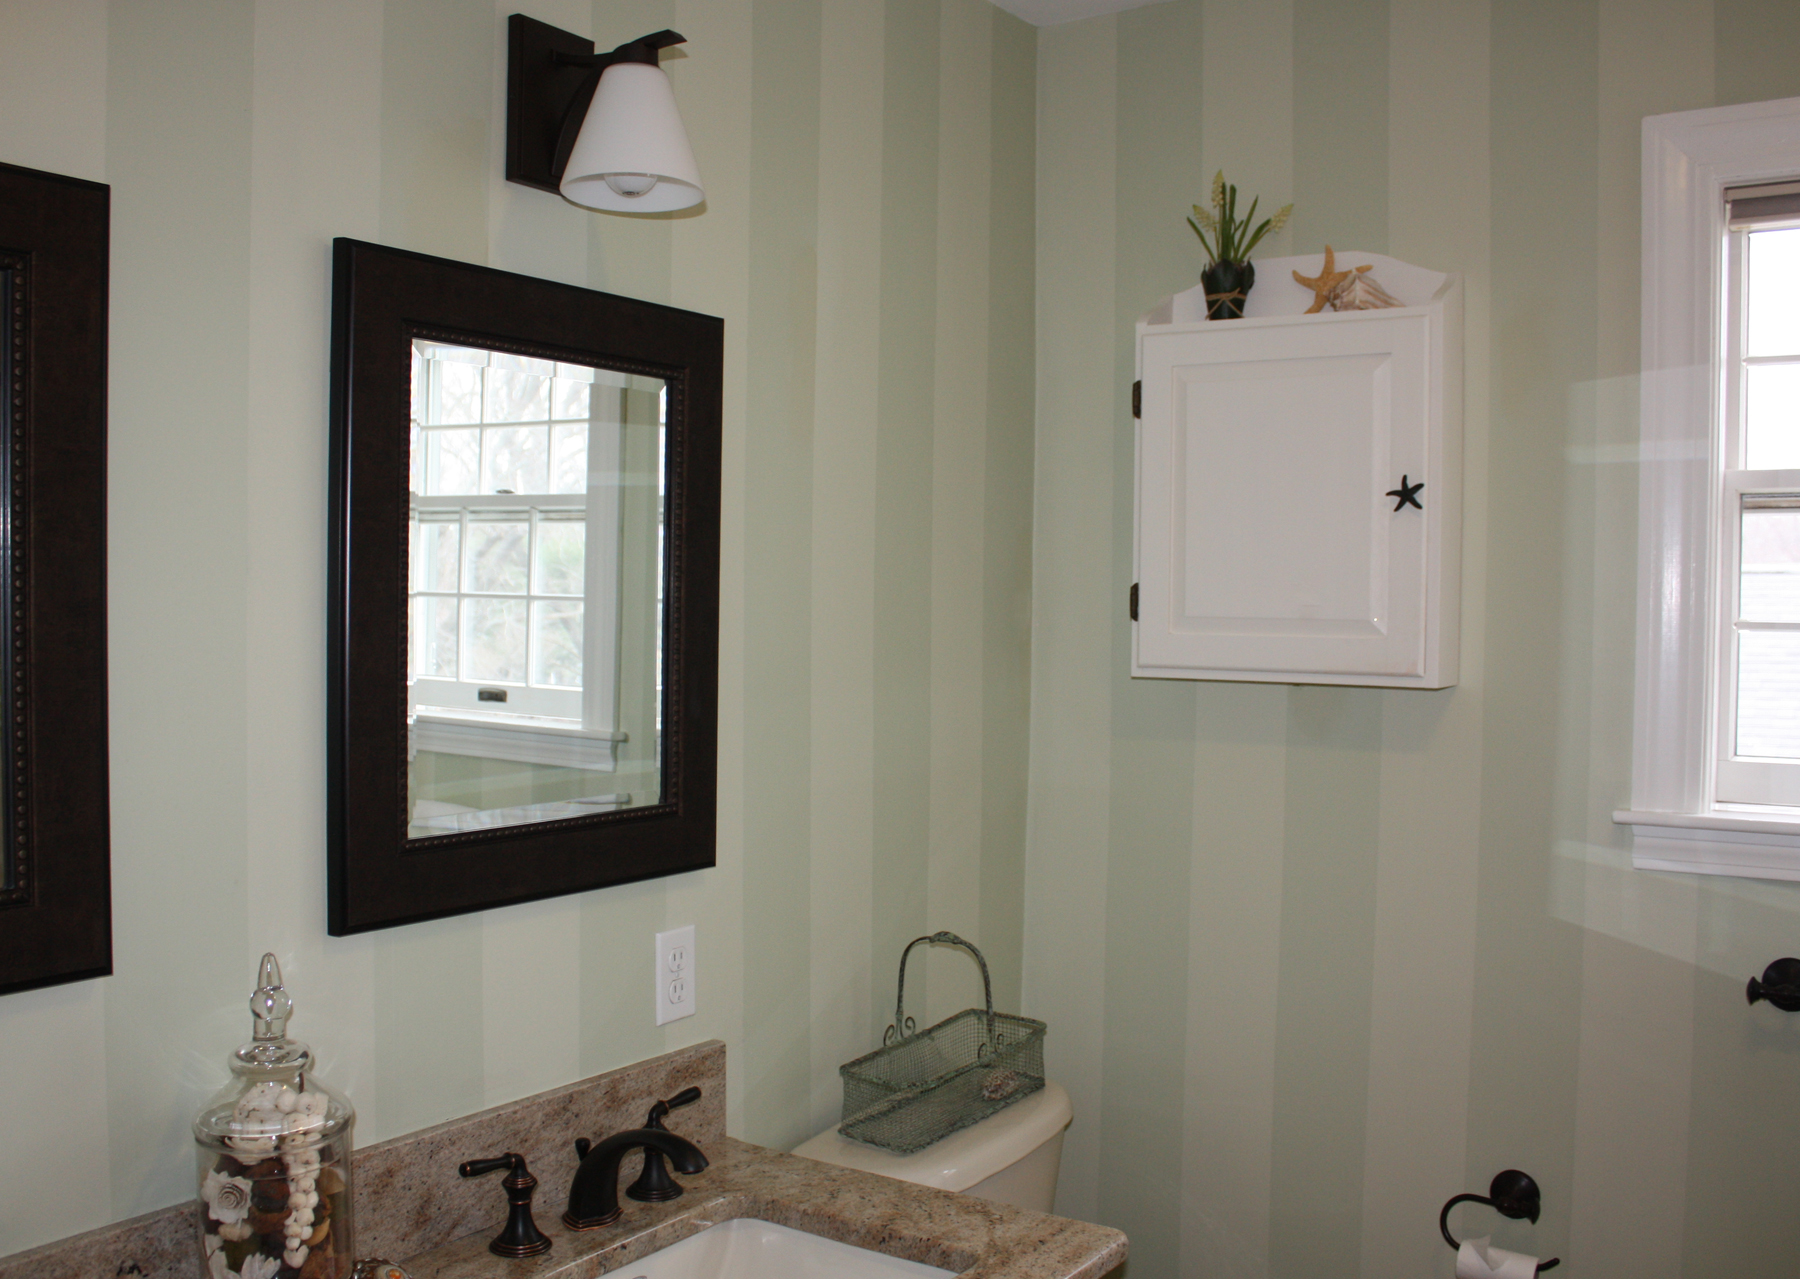 She Decided On Painted Tone On Tone Stripes That Looks Classic And Elegant.  The Original Color, Guilford Green From Benjamin Moore, Was Half Tinted To  ...